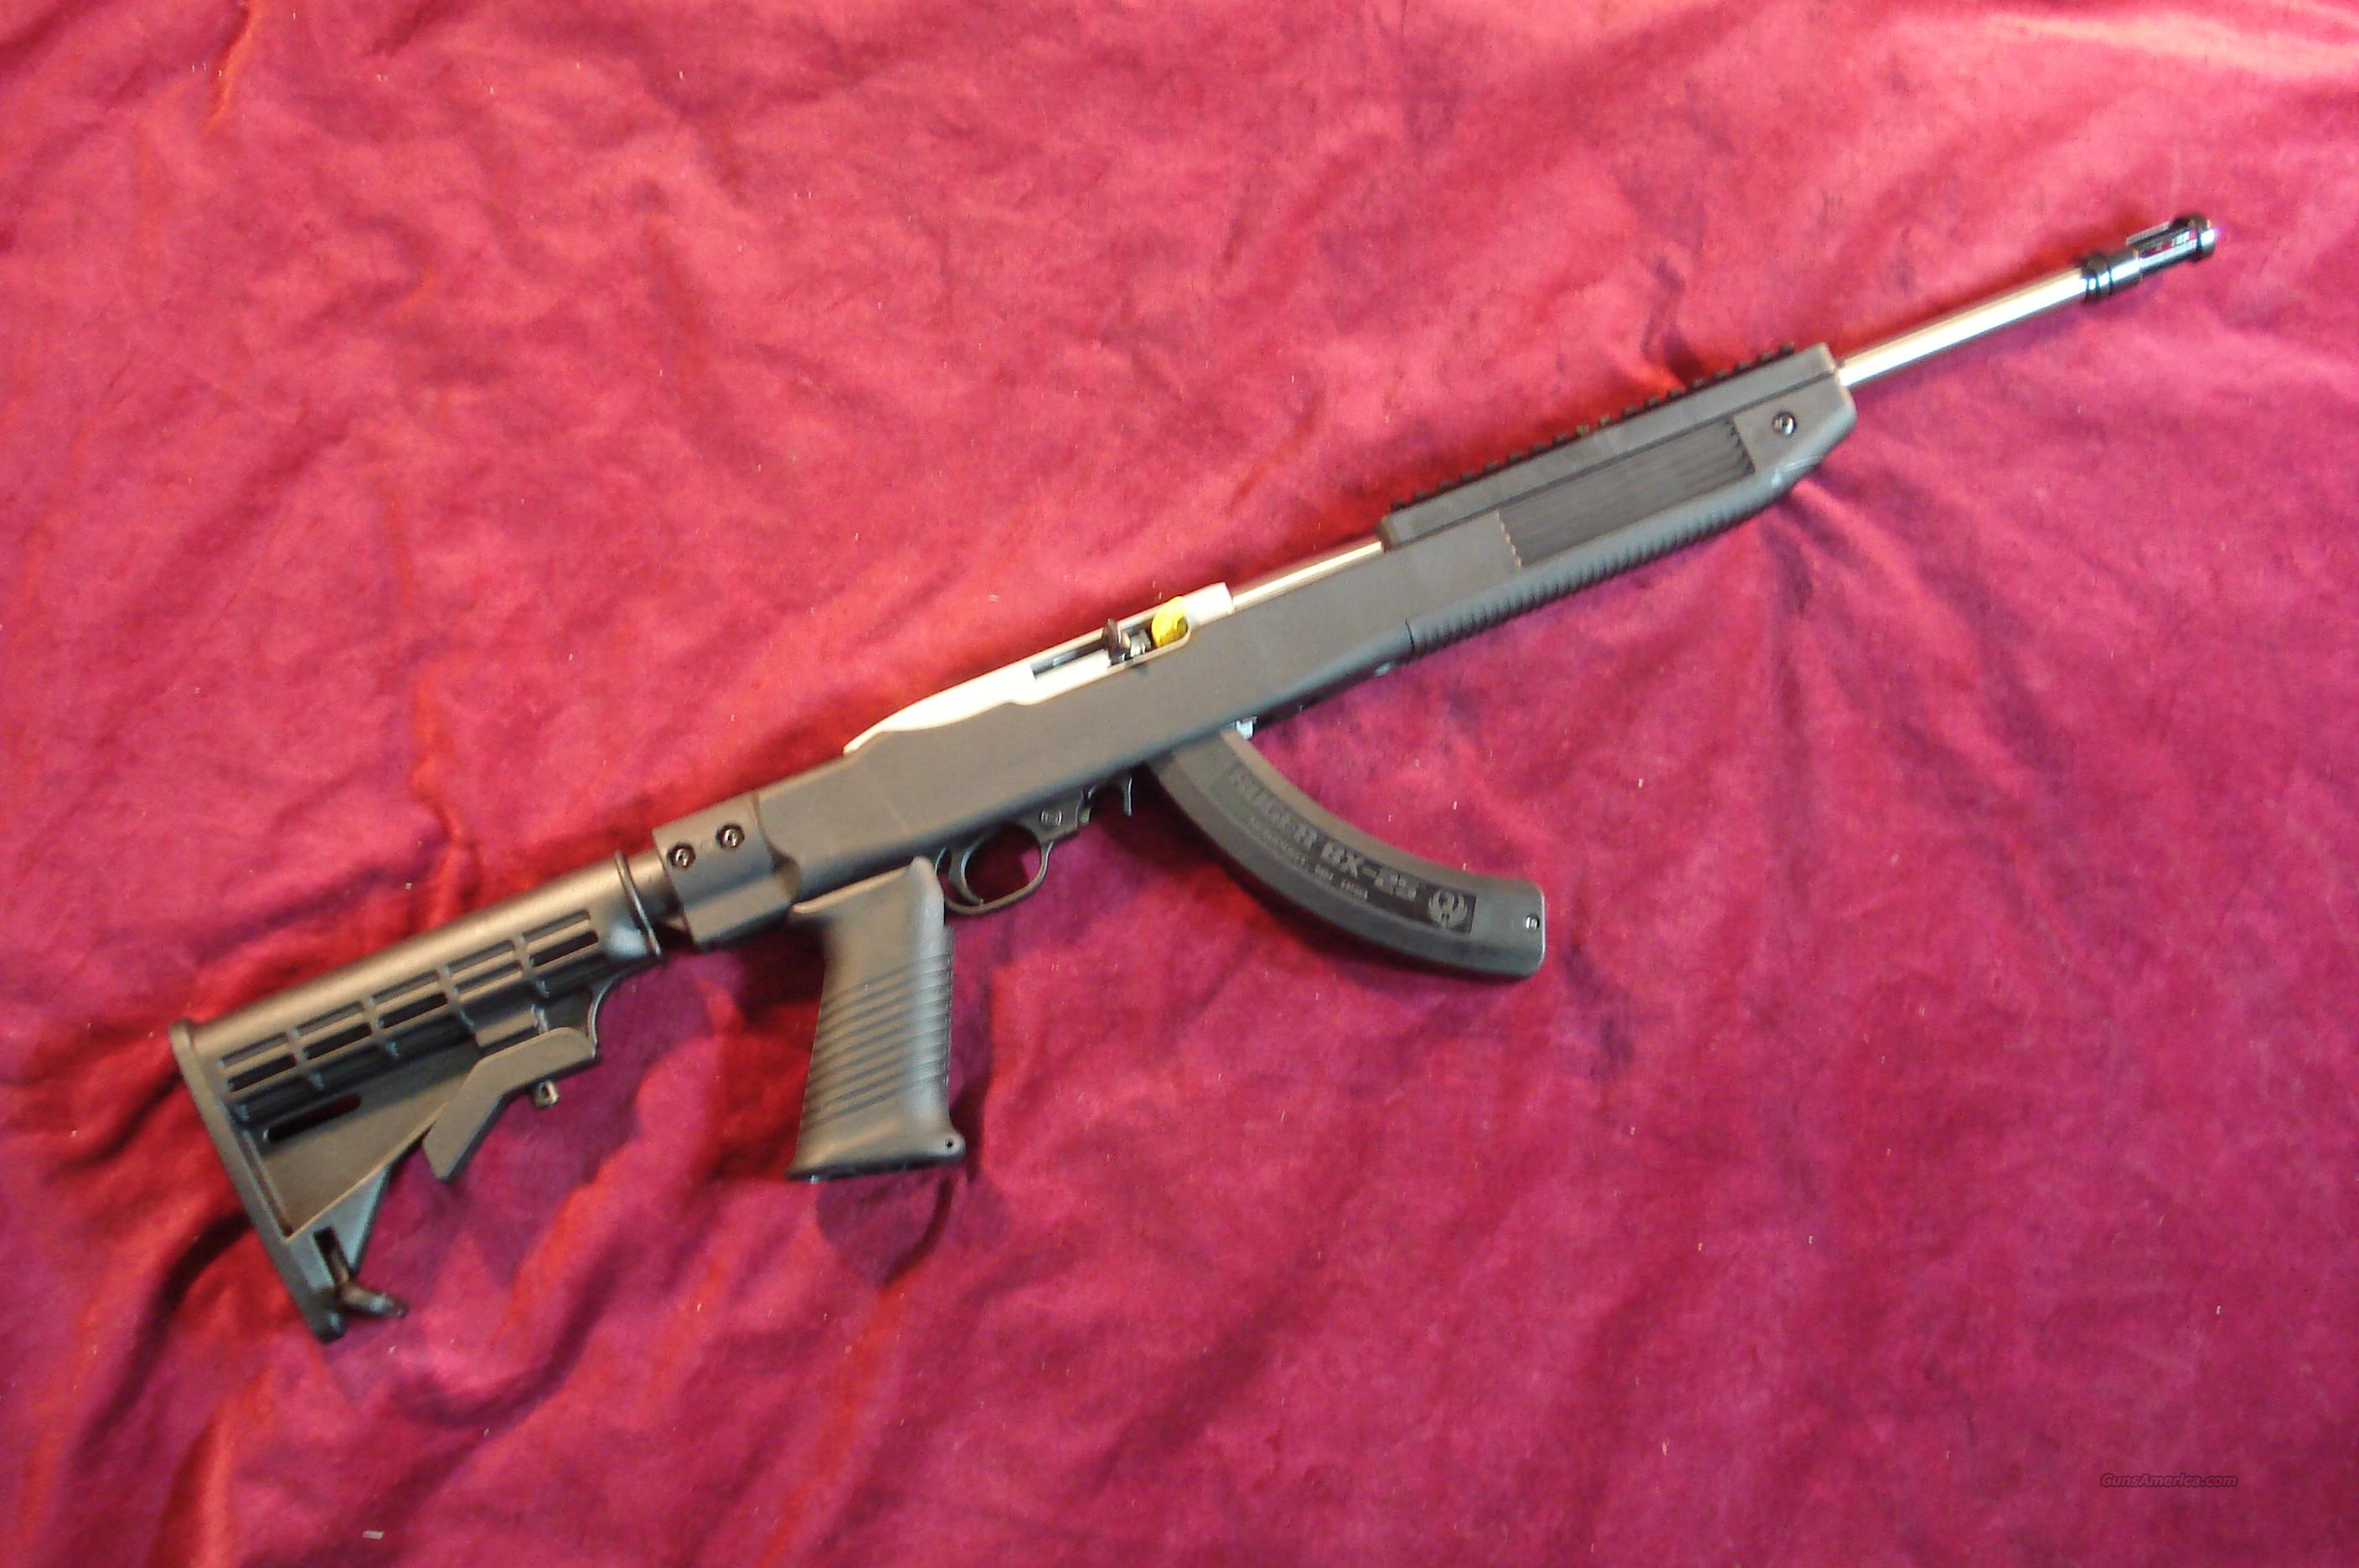 RUGER STAINLESS 10/22 TACTICAL WITH TAPCO STOCK AND FACTORY 25 ROUND MAG NEW  Guns > Rifles > Ruger Rifles > 10-22